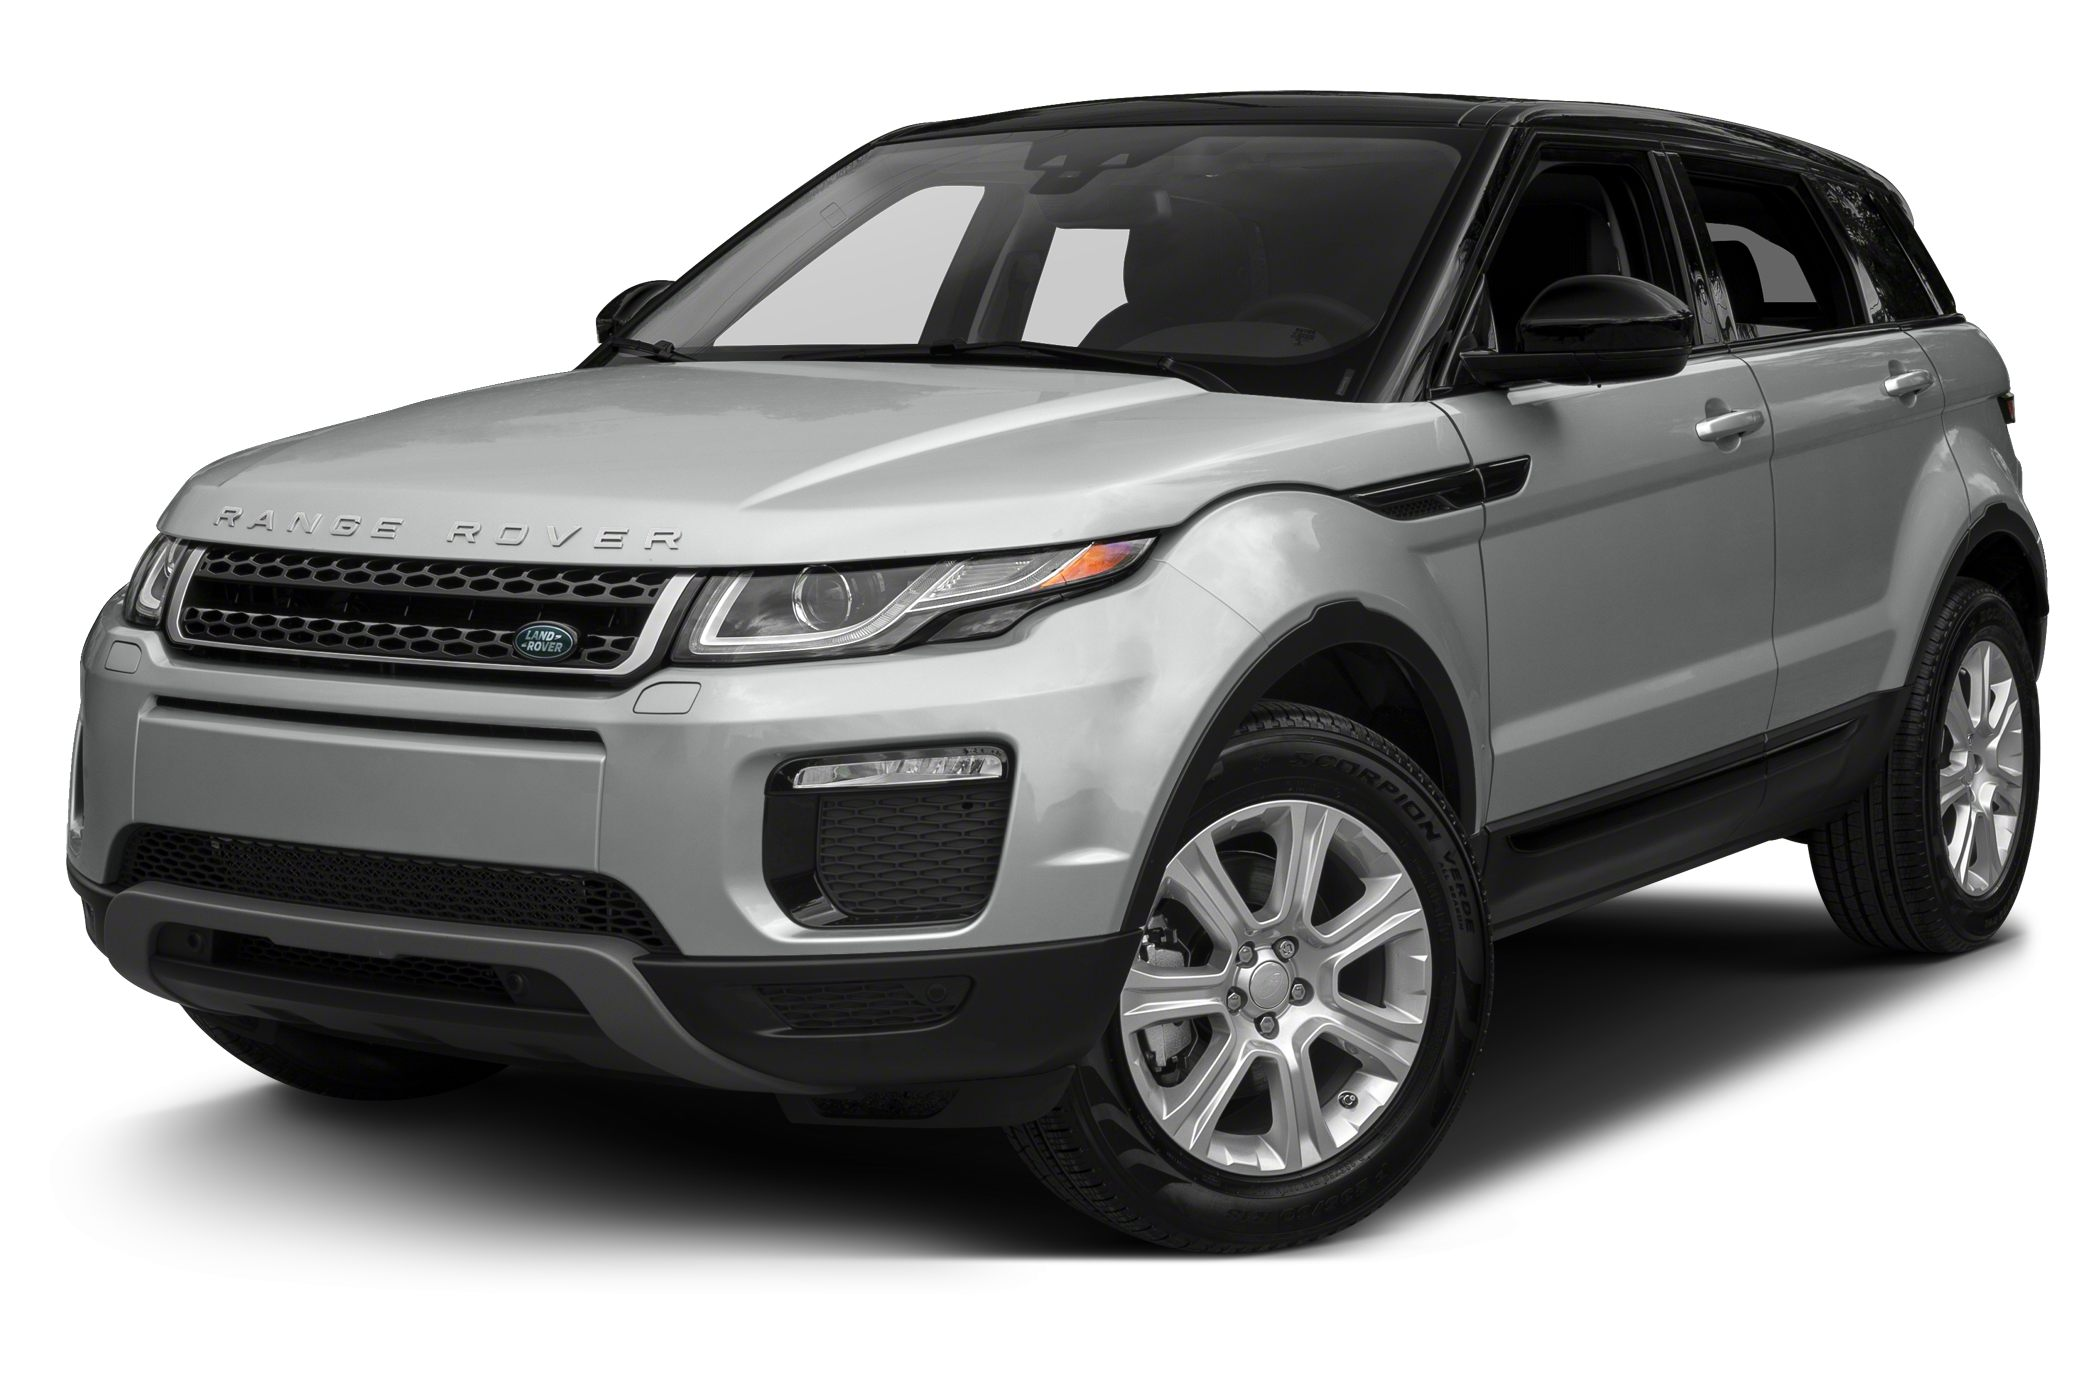 2017 Land Rover Range Rover Evoque Autobiography 4x4 5 Door Pricing